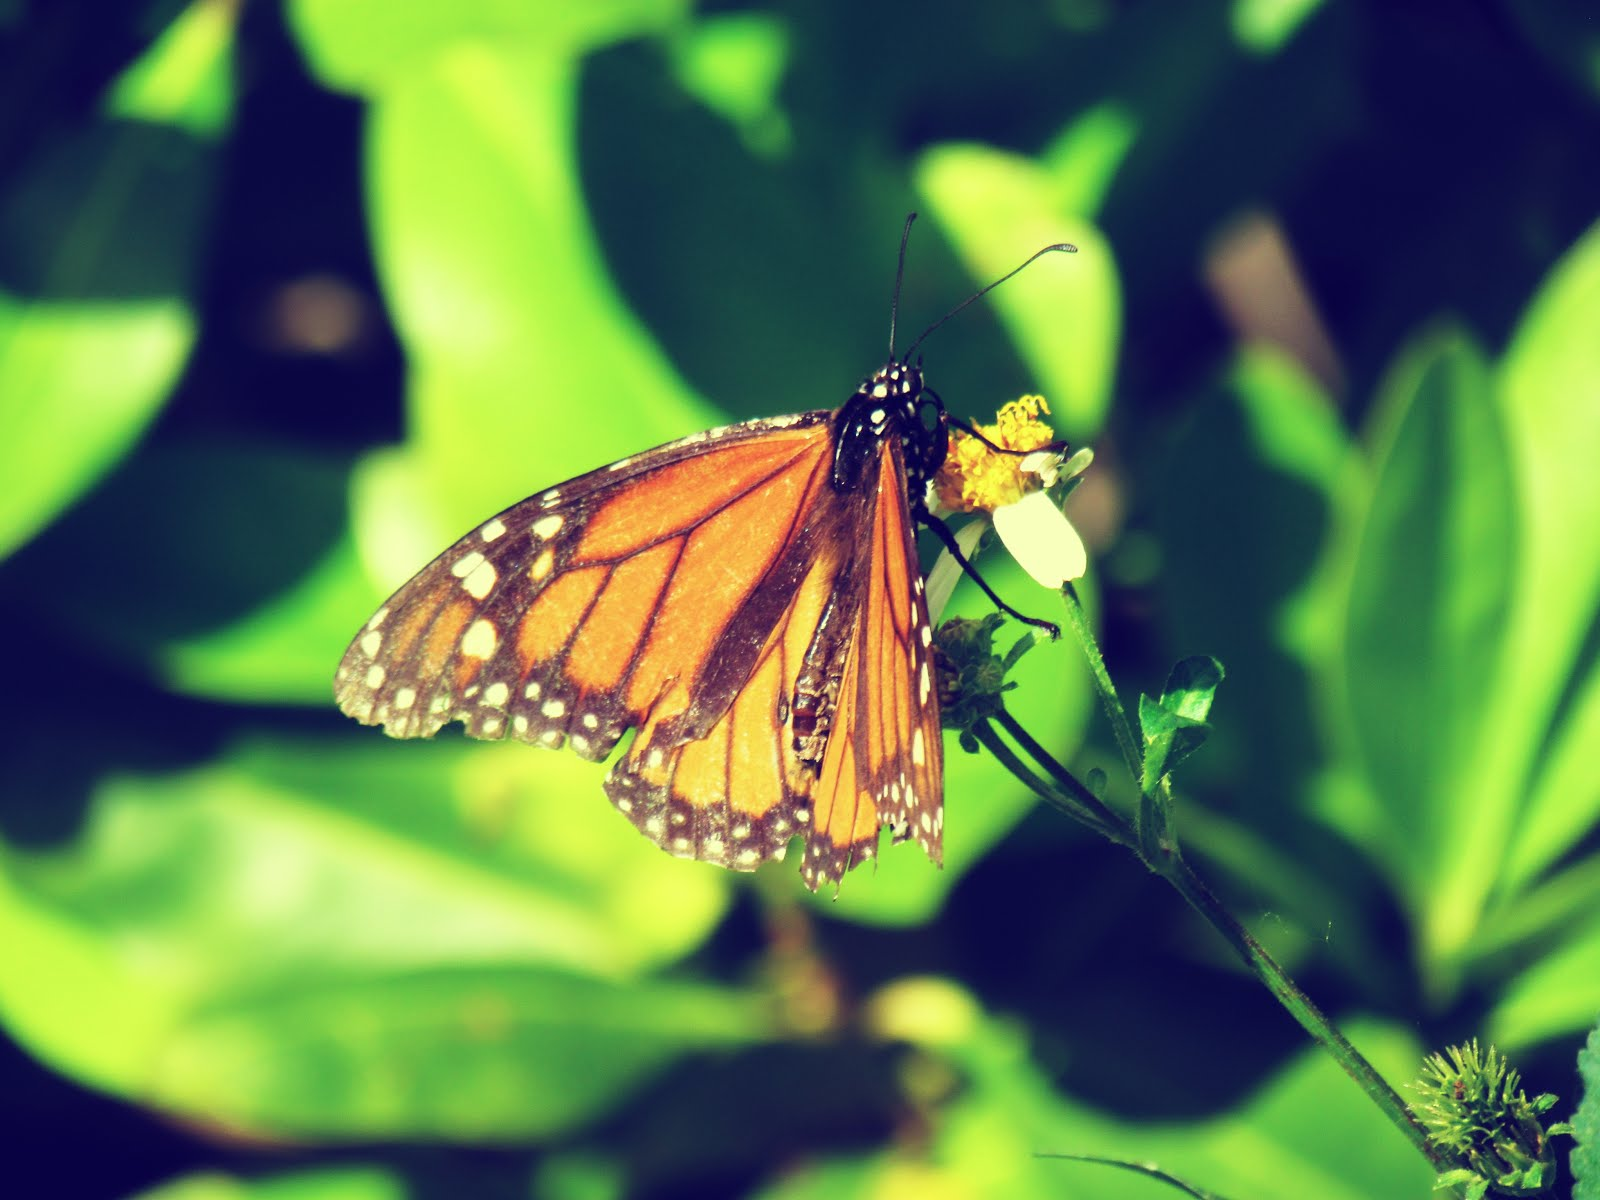 An orange monarch butterfly on a bed of blurred leaves in the backdrop of nature